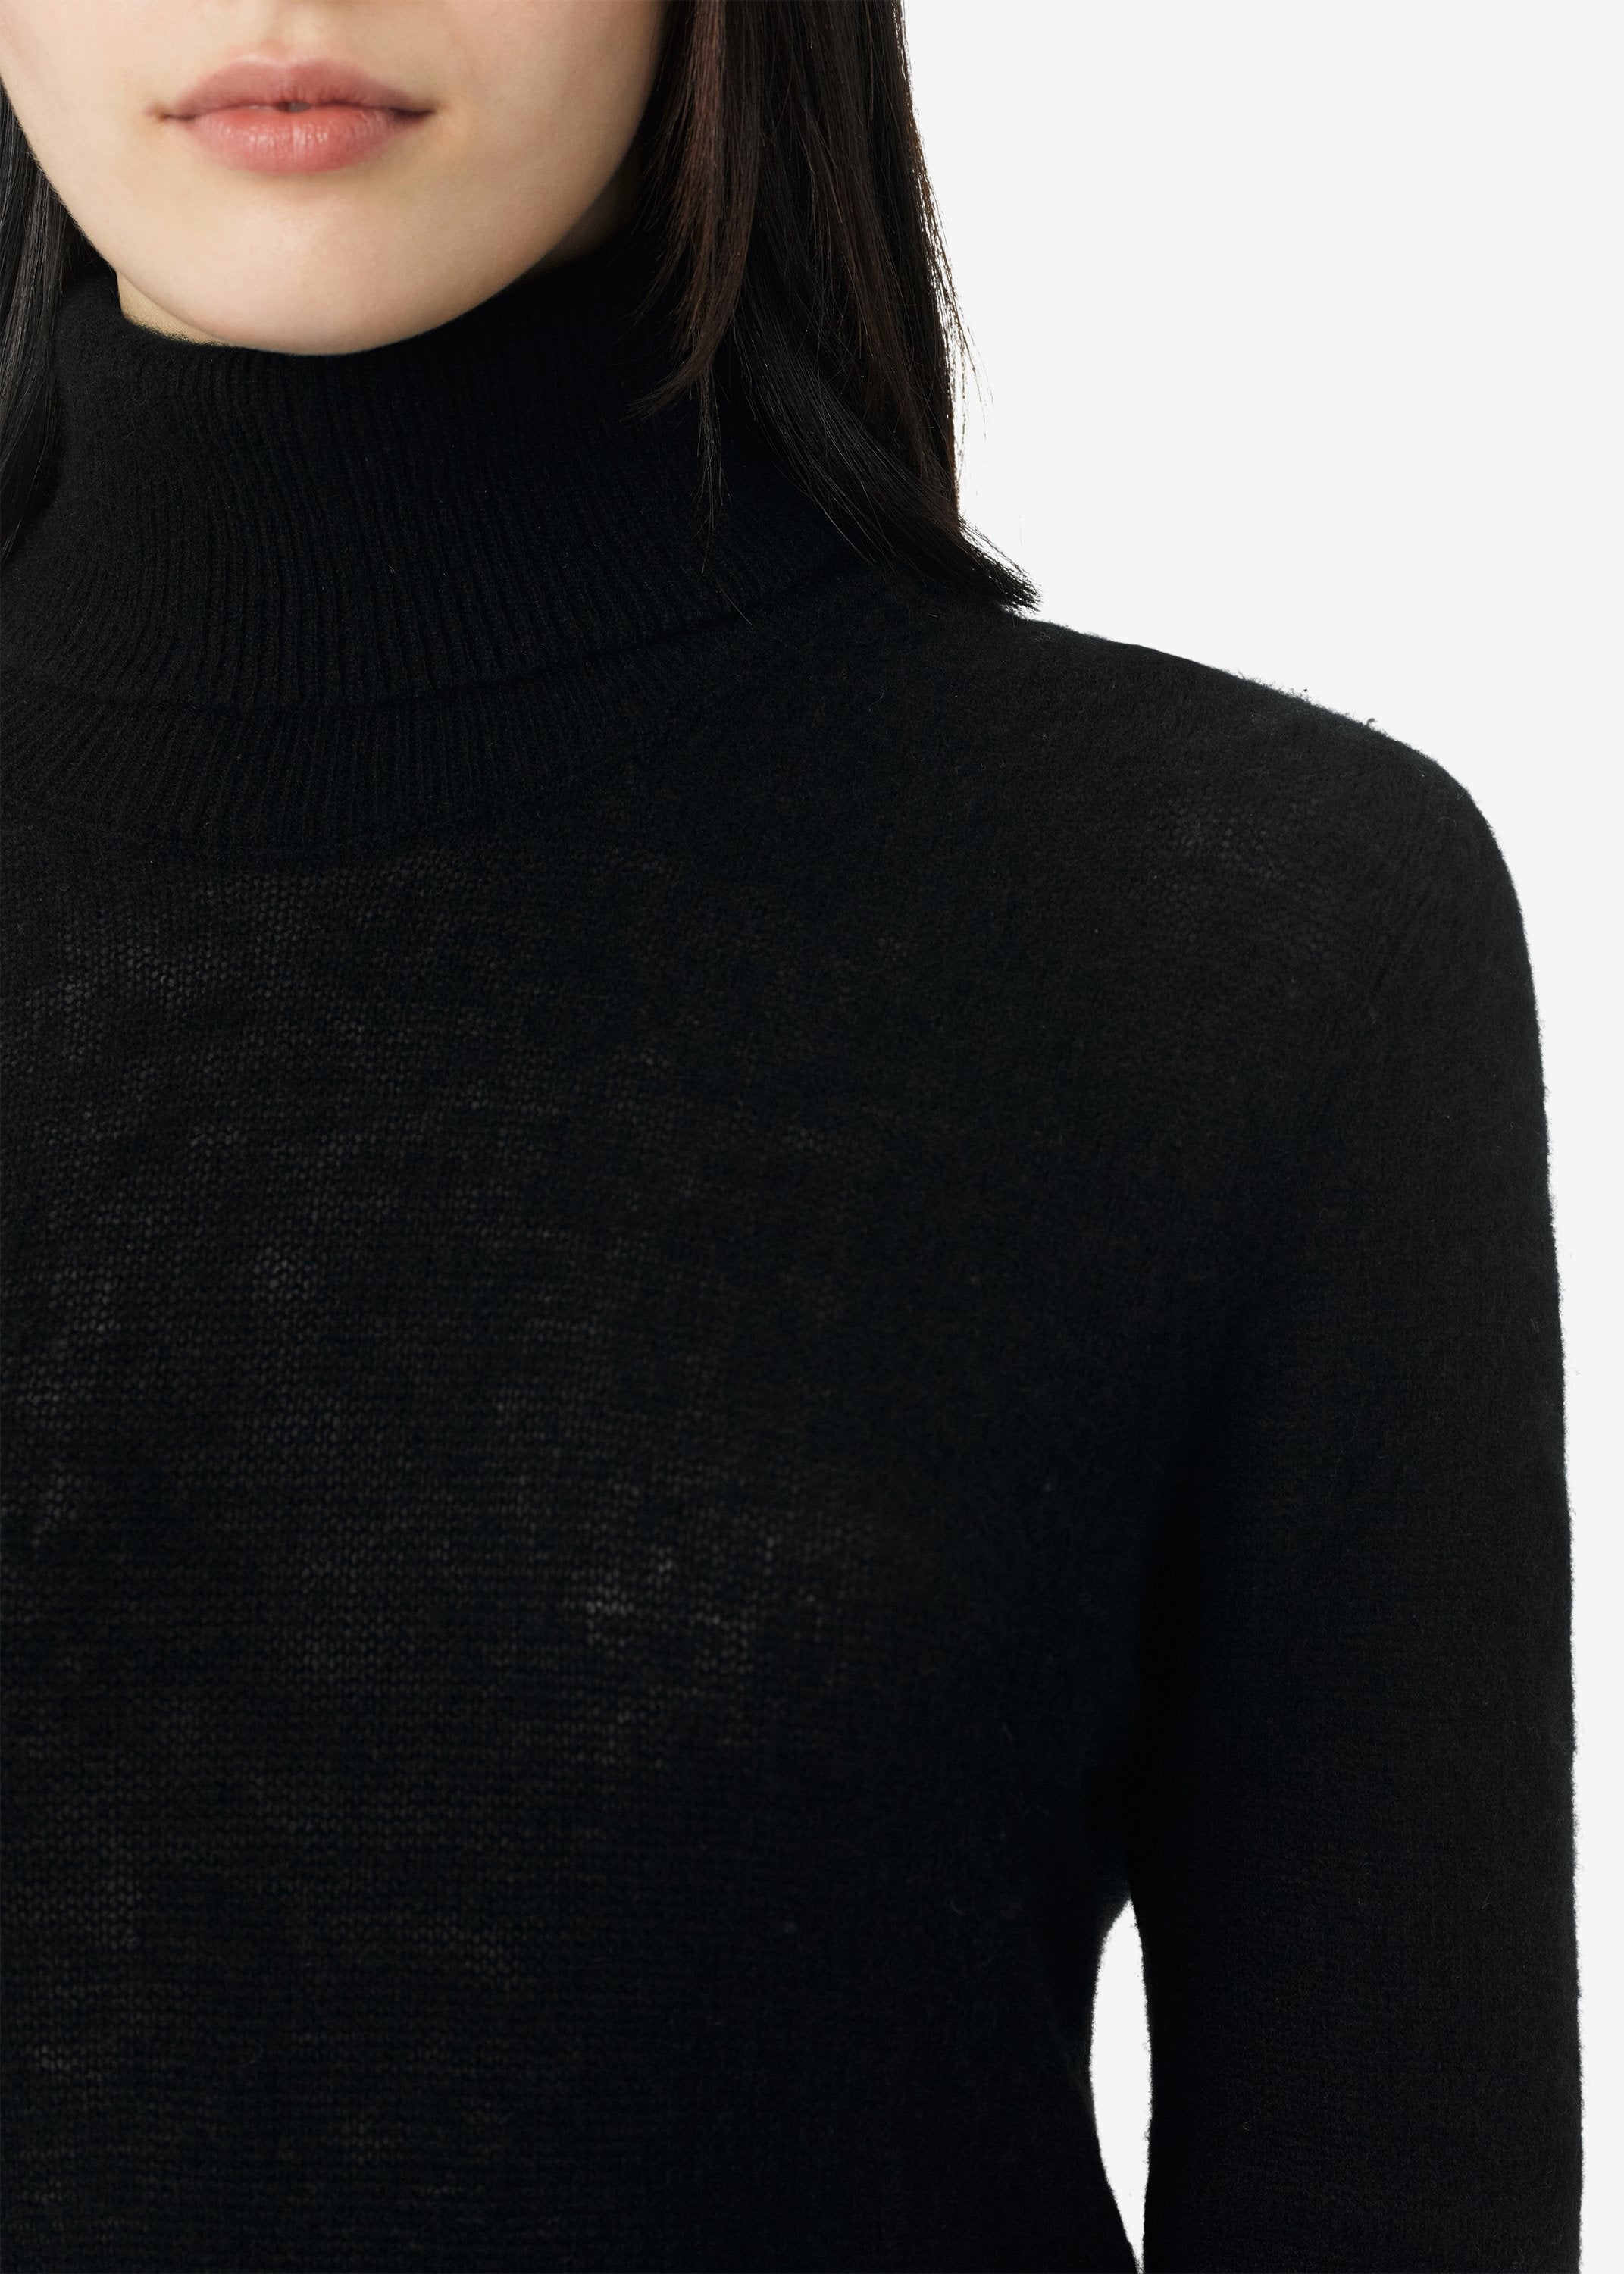 turtleneck-knit-black-image-2